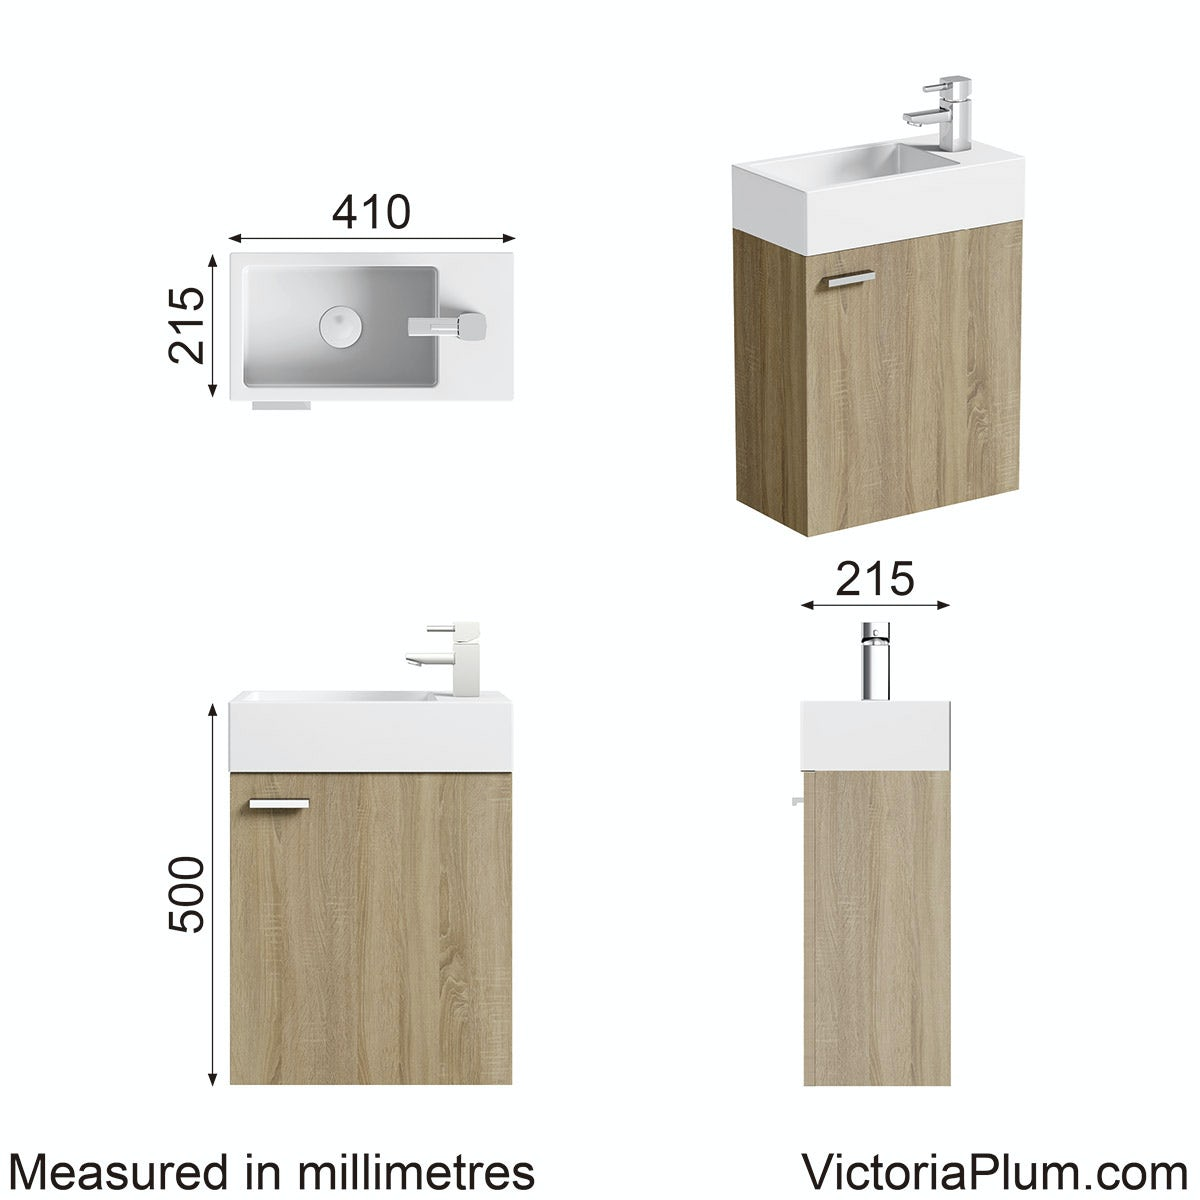 Dimensions for Orchard Oak wall hung cloakroom unit with basin 410mm